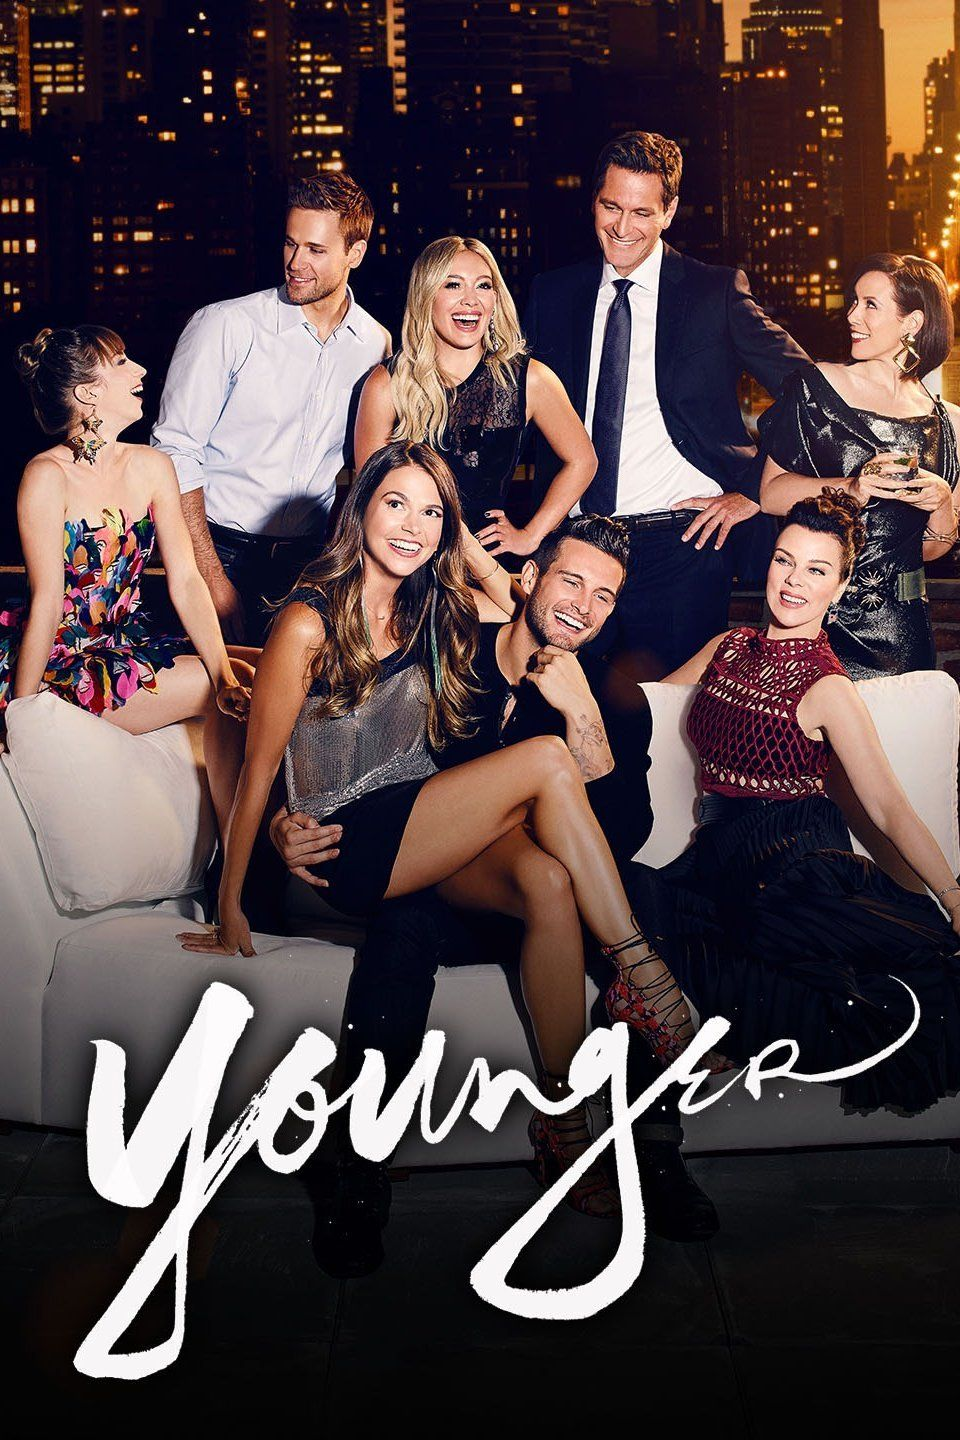 Image result for Younger poster